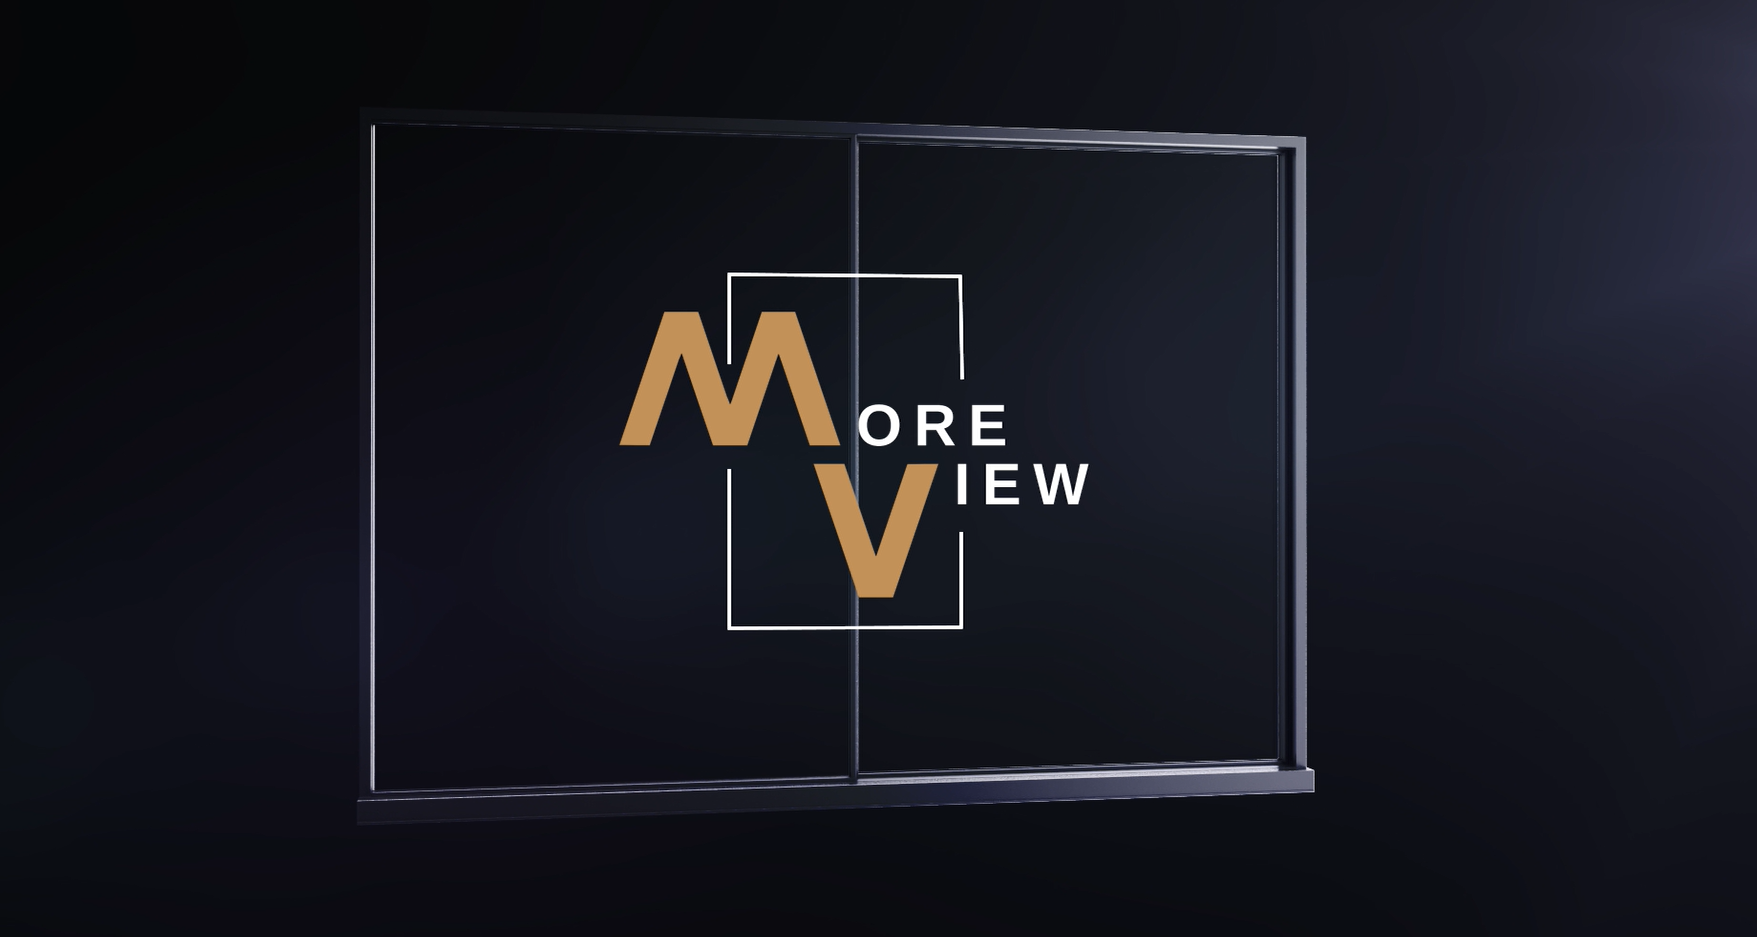 System Moreview